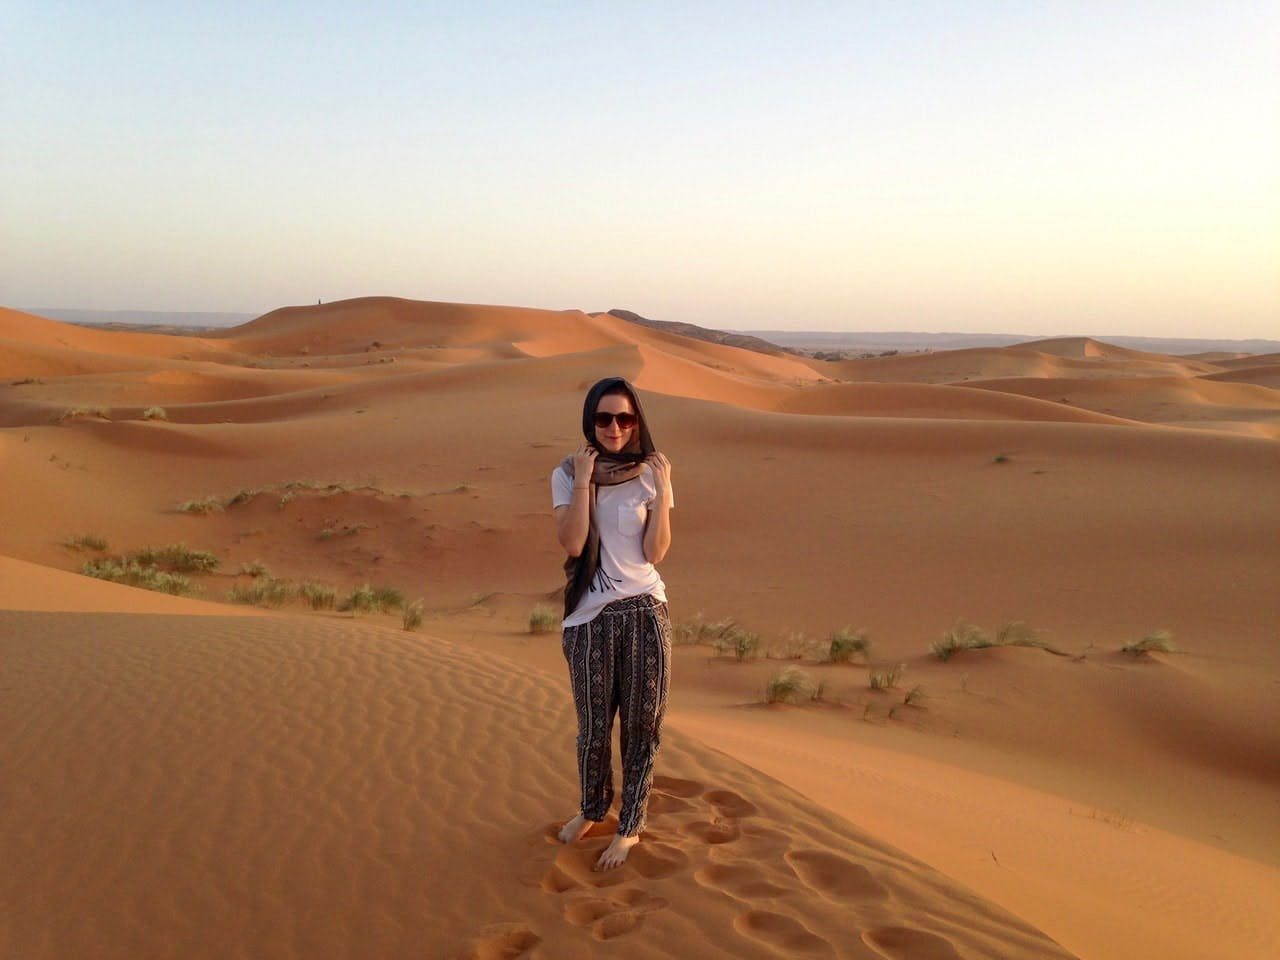 Natasha Brownlee in the Sahara Desert, Morocco